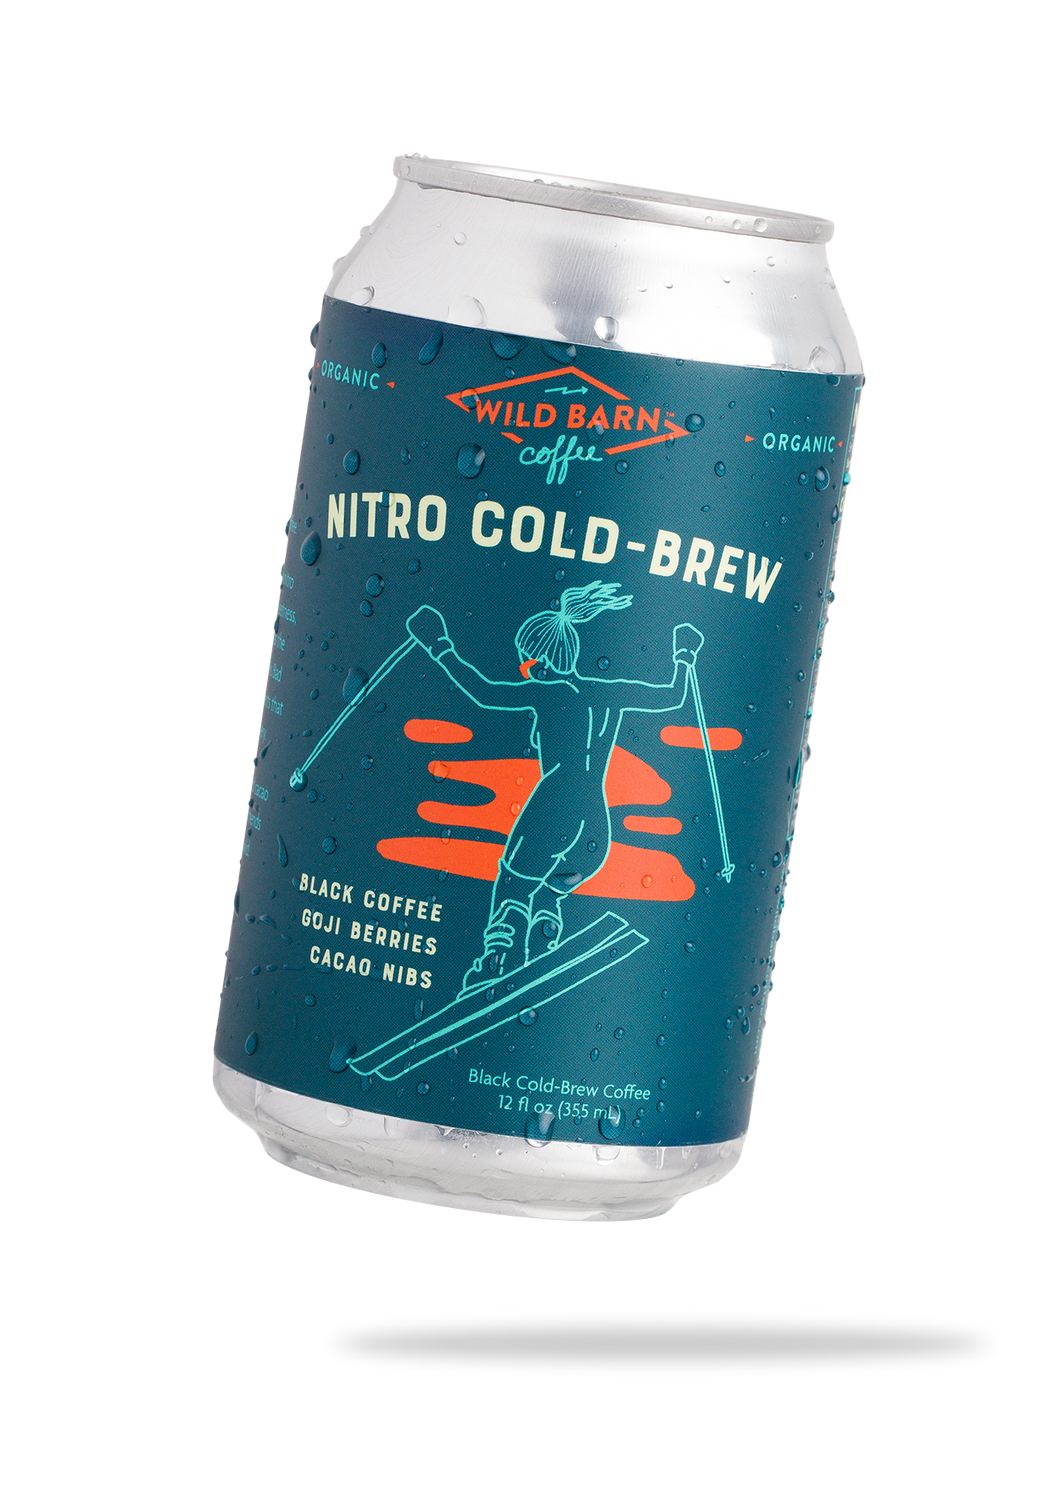 Wild Barn Nitro Cold-Brew